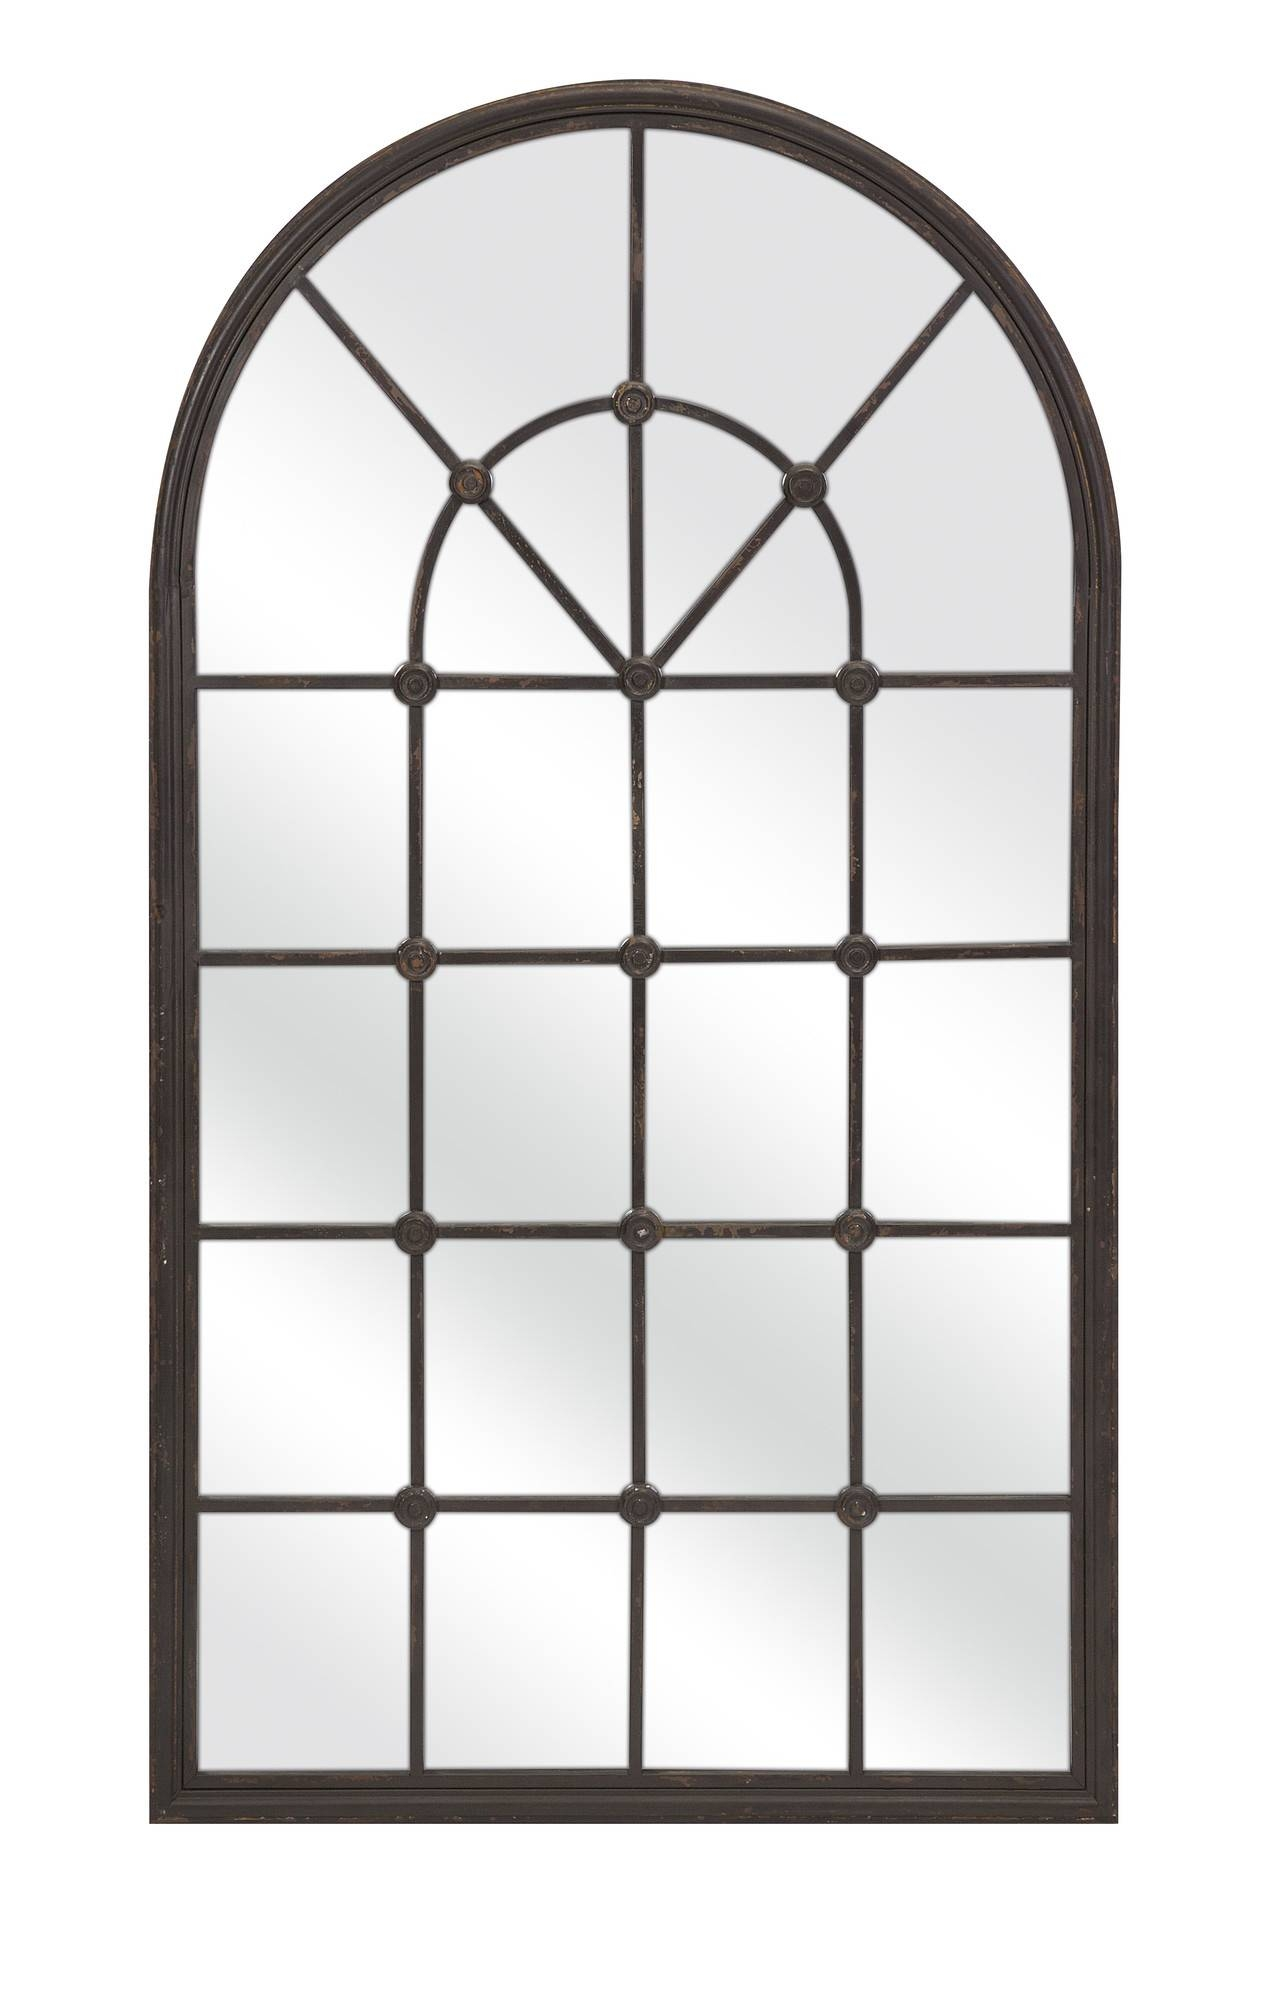 Amiel Large Arch Mirror 7 Unique Decoration And Large Arched pertaining to Arched Window Mirrors (Image 1 of 25)